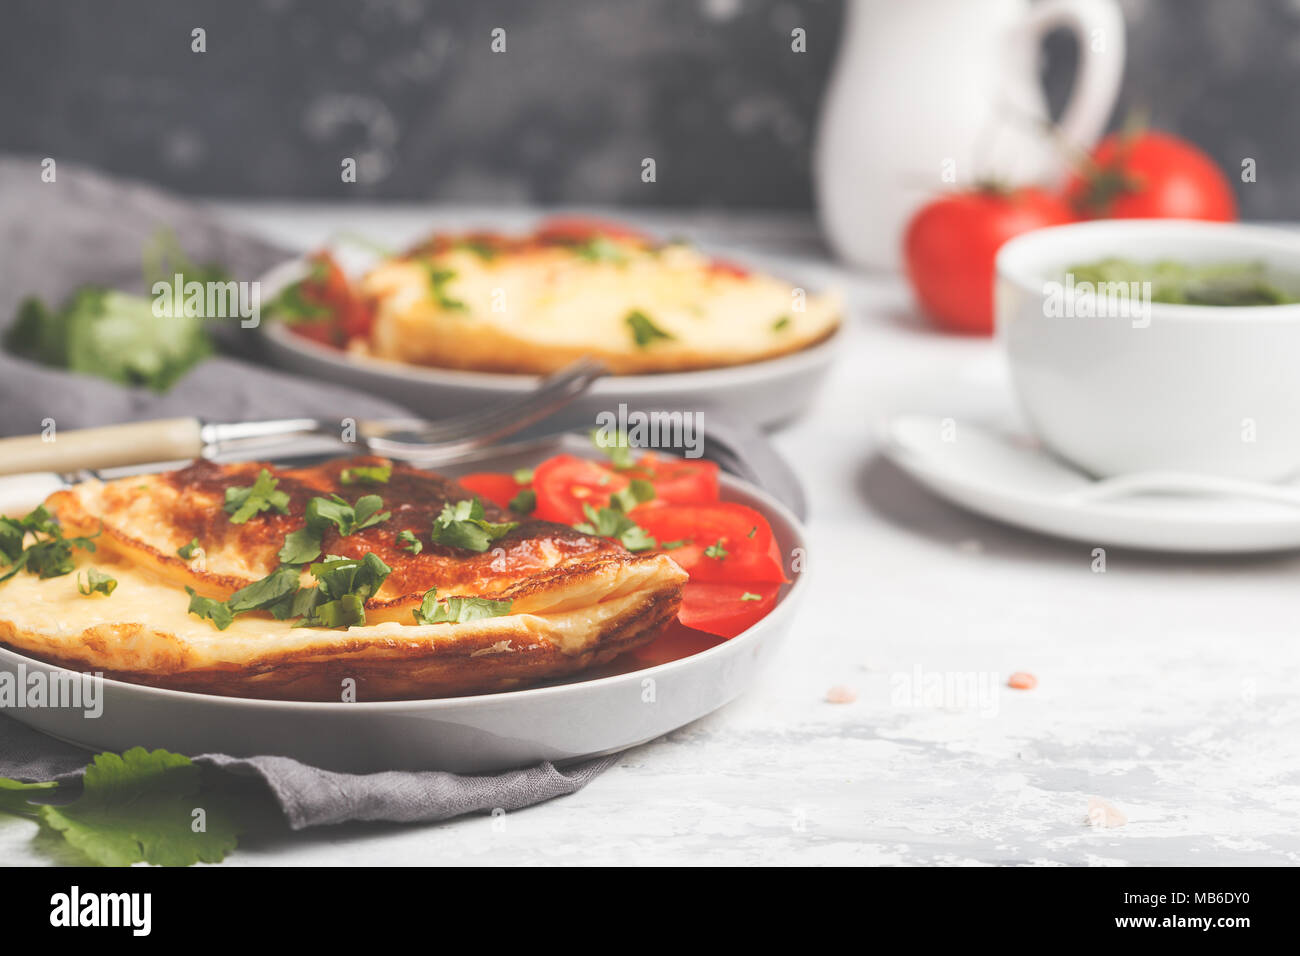 Delicious bright egg omelet with cheese and vegetables. Breakfast food concept. - Stock Image